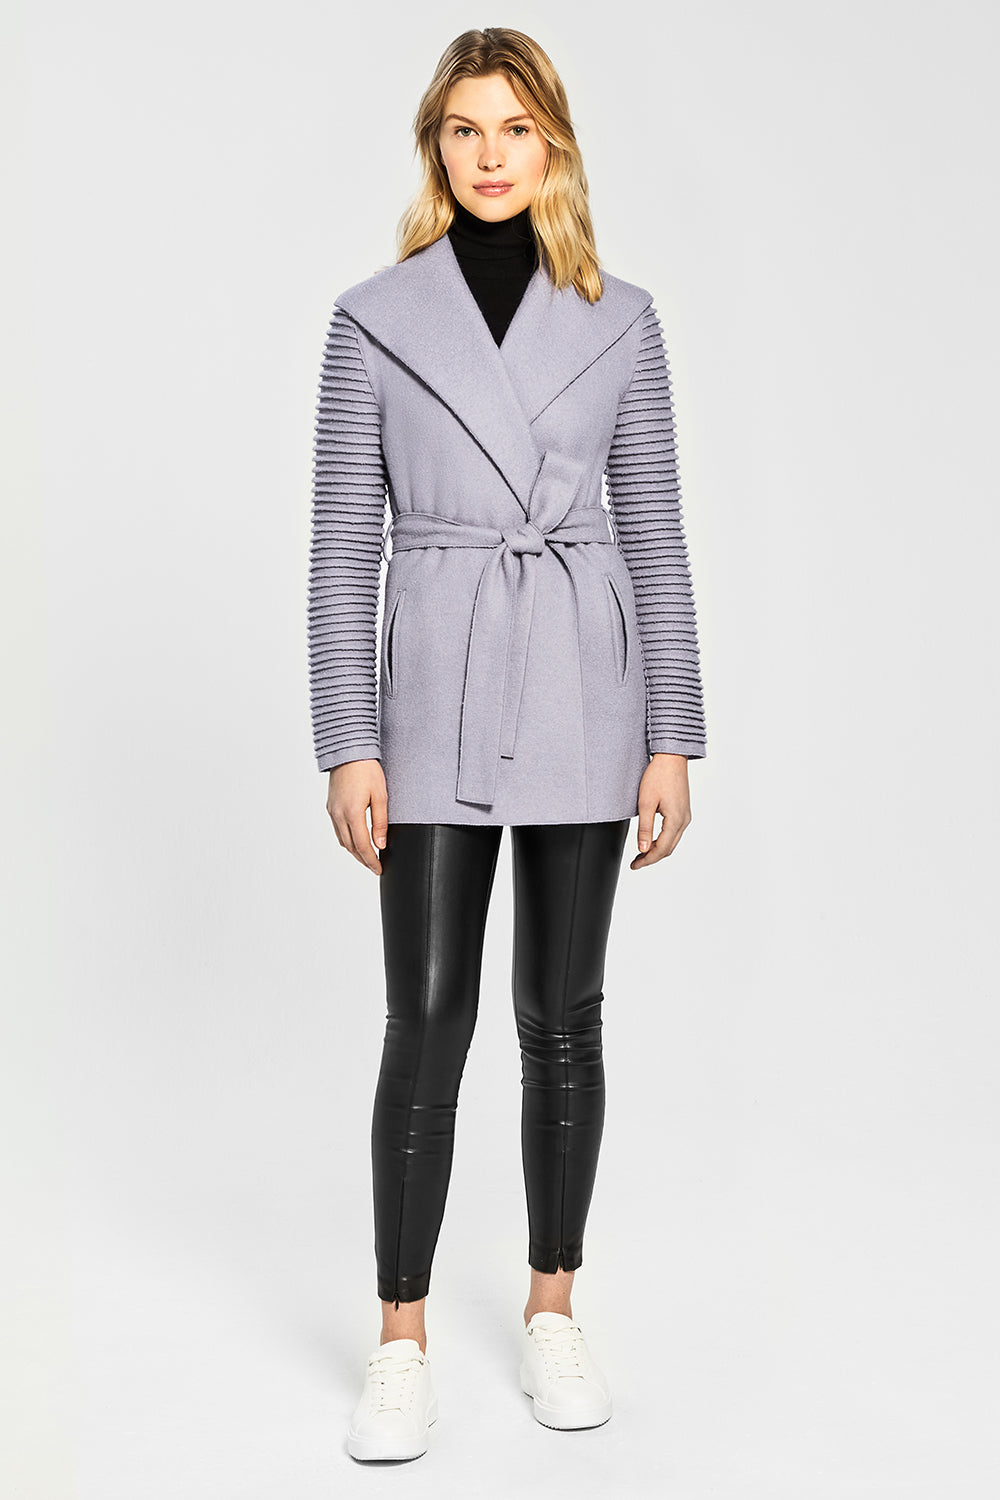 Sentaler Wrap Coat with Ribbed Sleeves featured in Superfine Alpaca and available in Gull Grey. Seen from front.